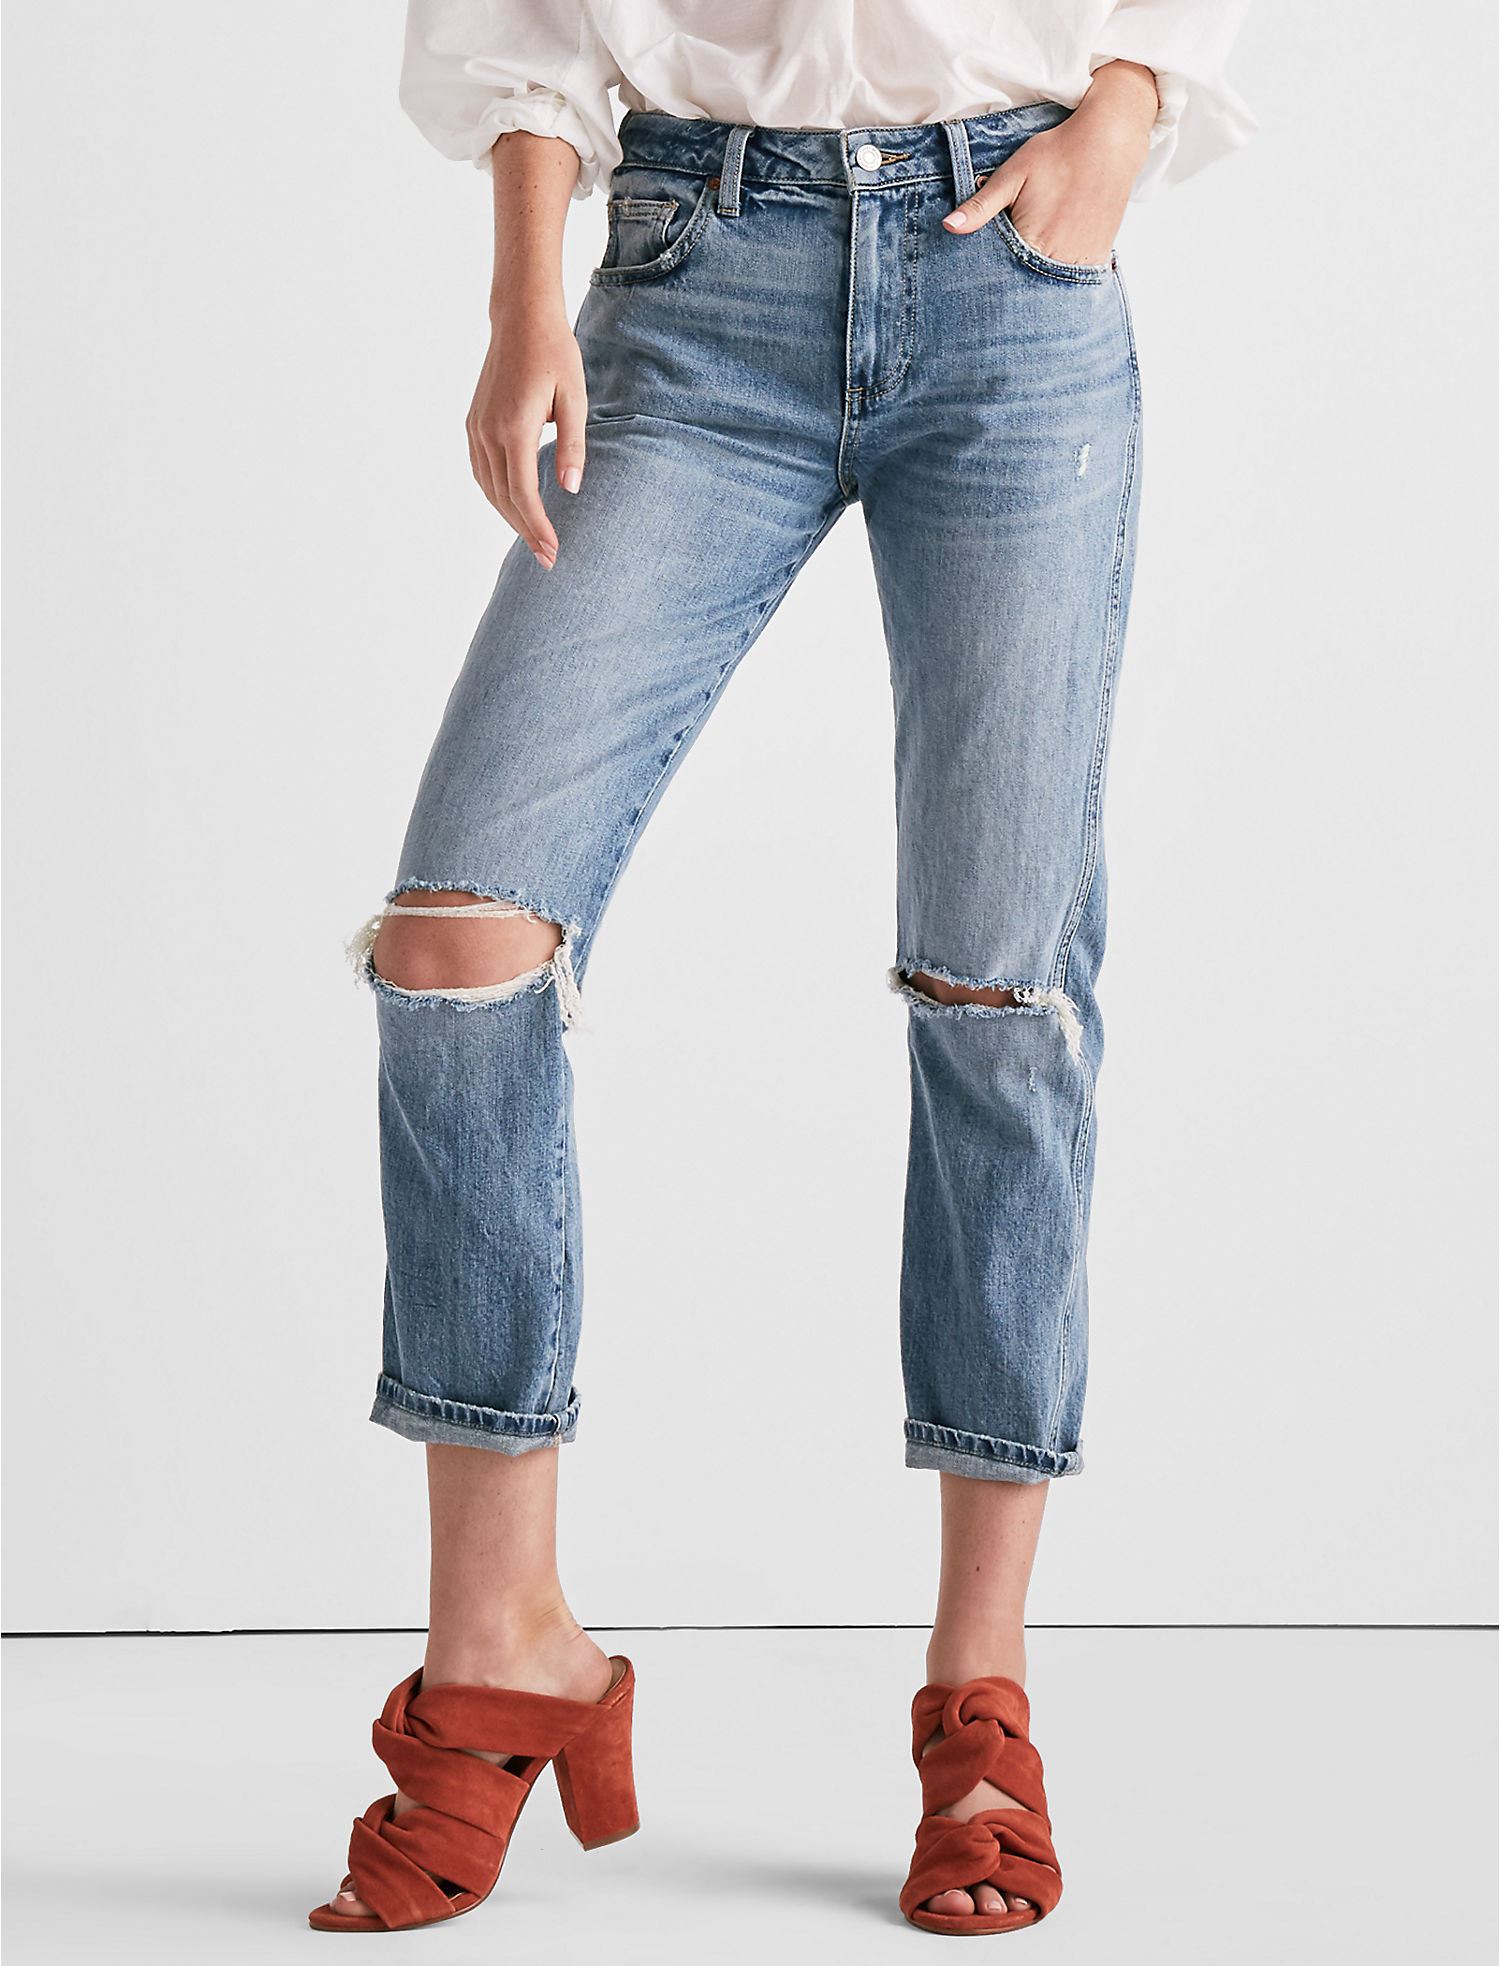 f9d83084c8 High Rise Tomboy Jean In Headliner Chew at Lucky Brand Jeans in ...